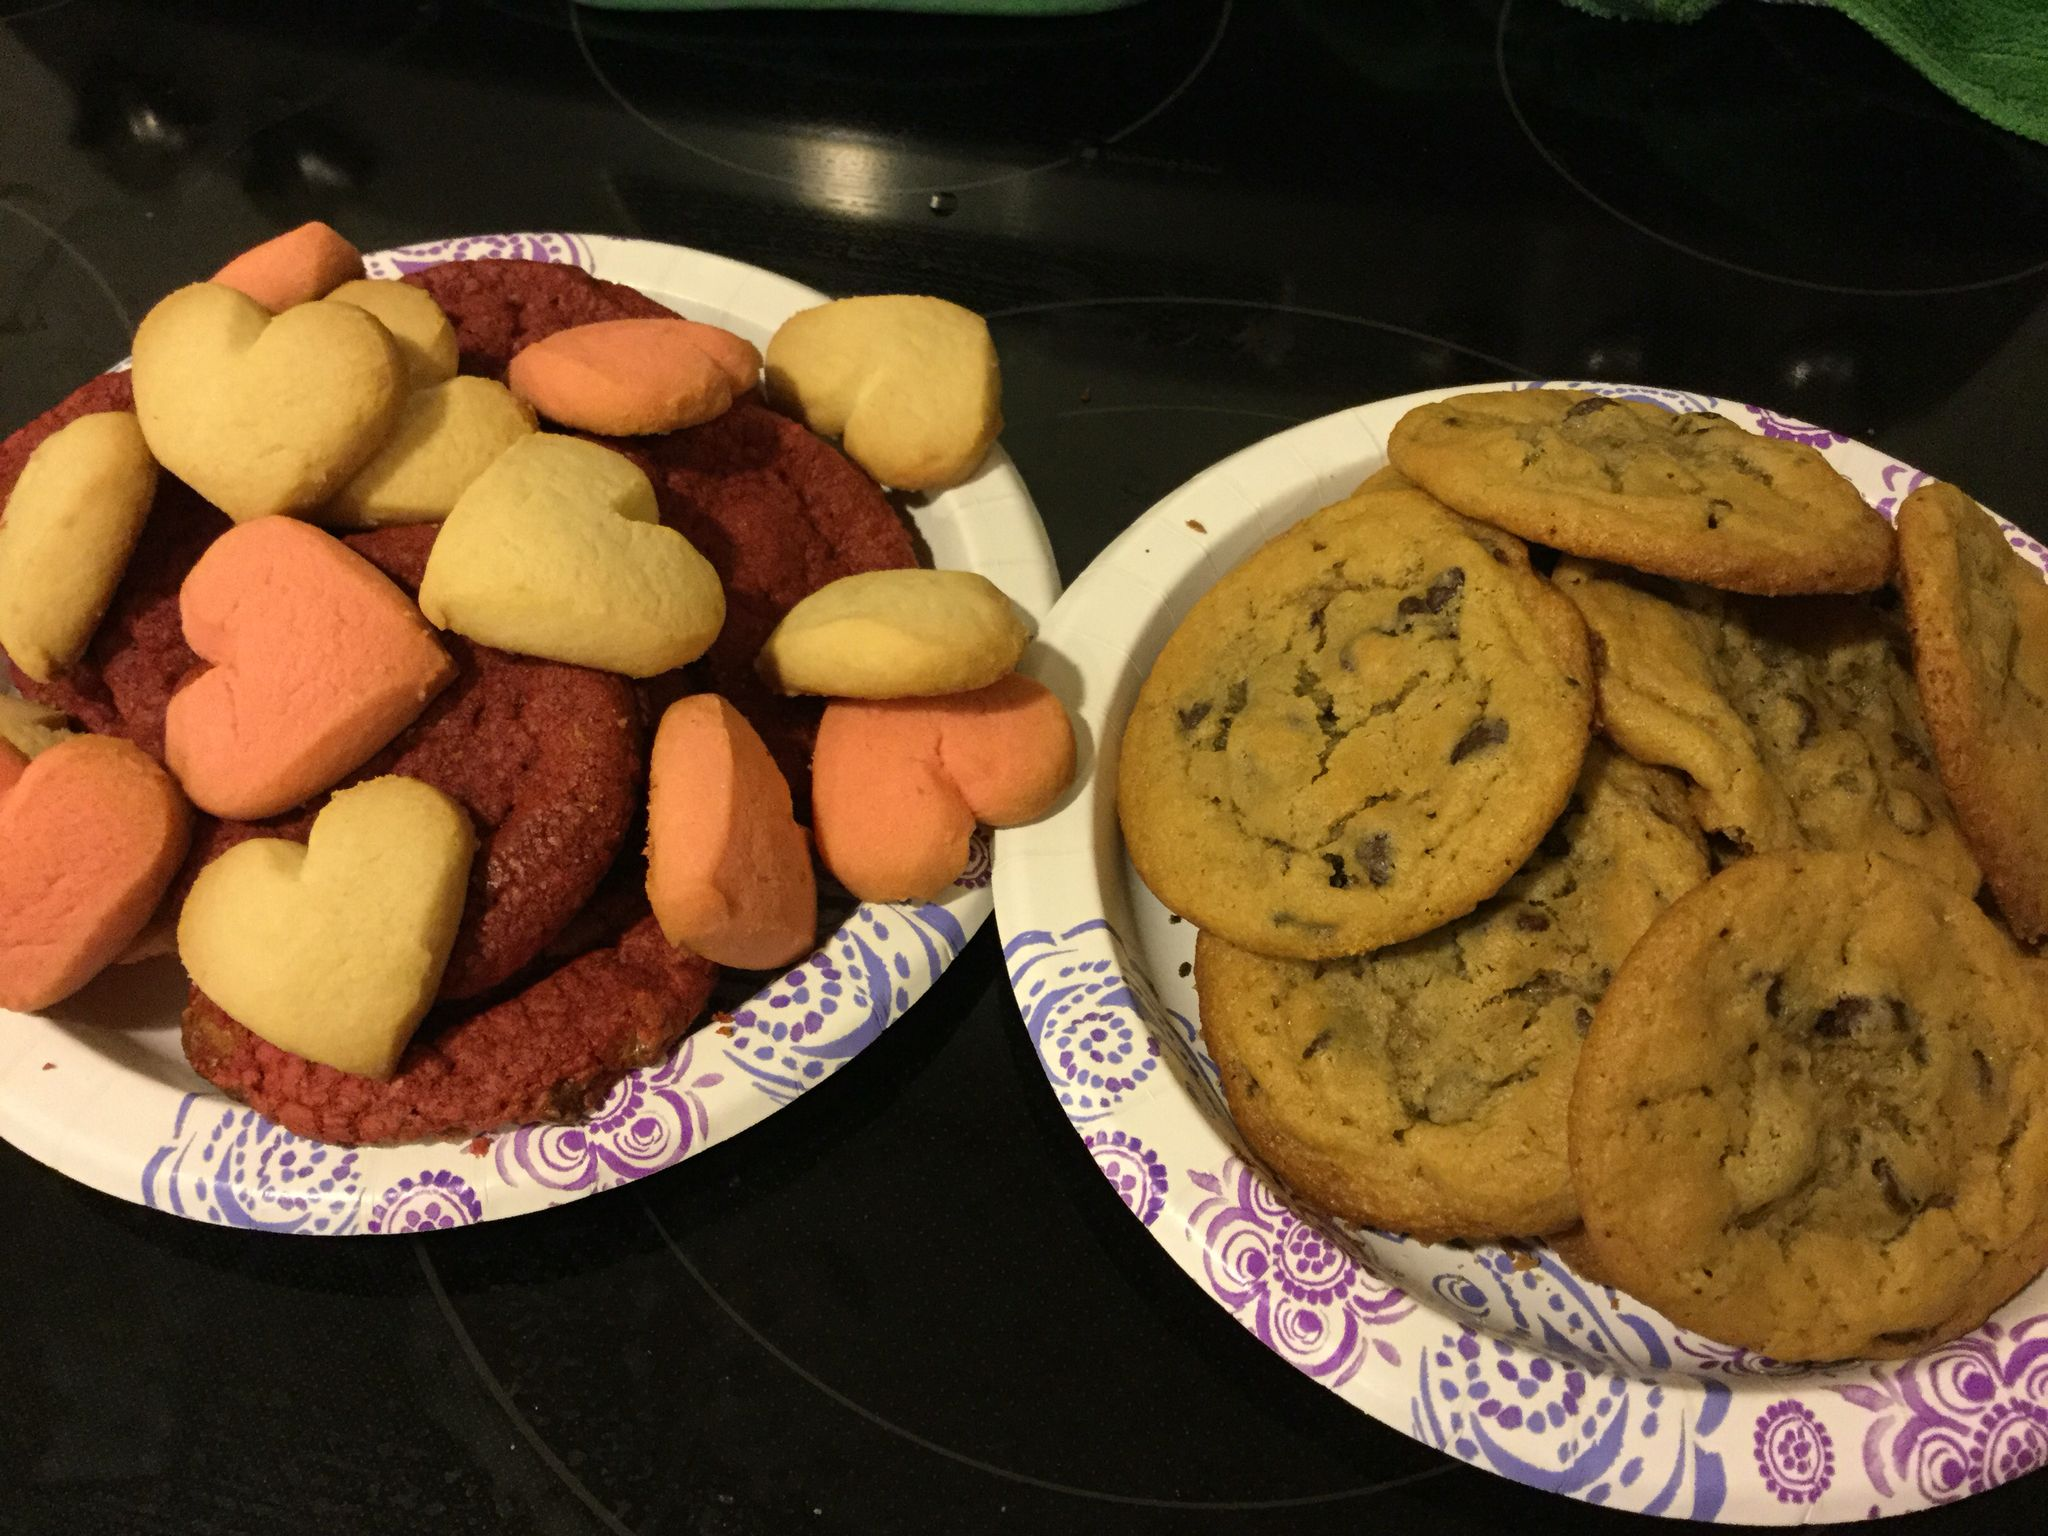 Cookie night with my valentines